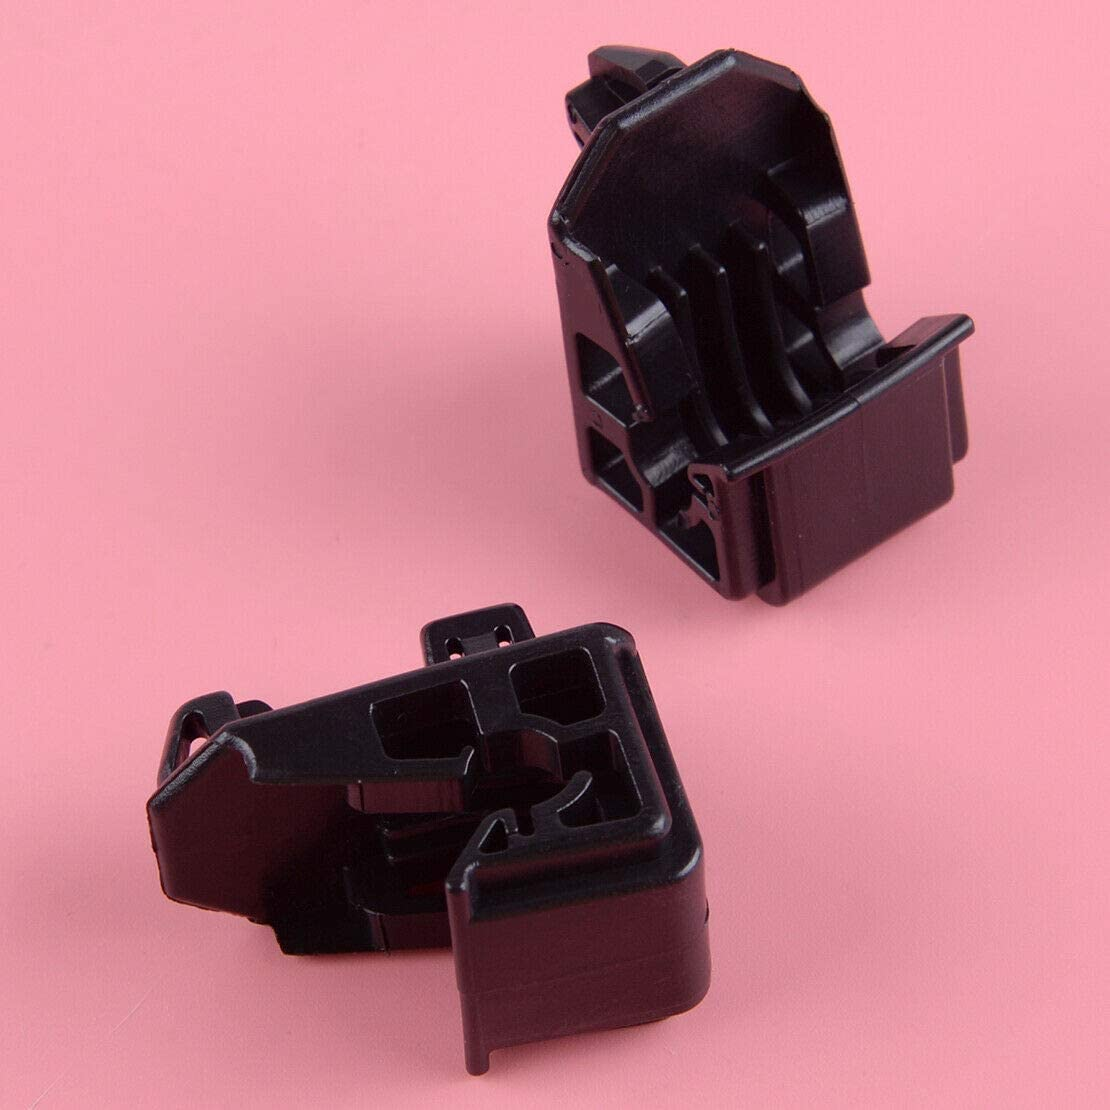 Auto Replacement Parts Max 83% OFF 2Pcs Headlight Mount Beauty products Headlamp Br Assembly